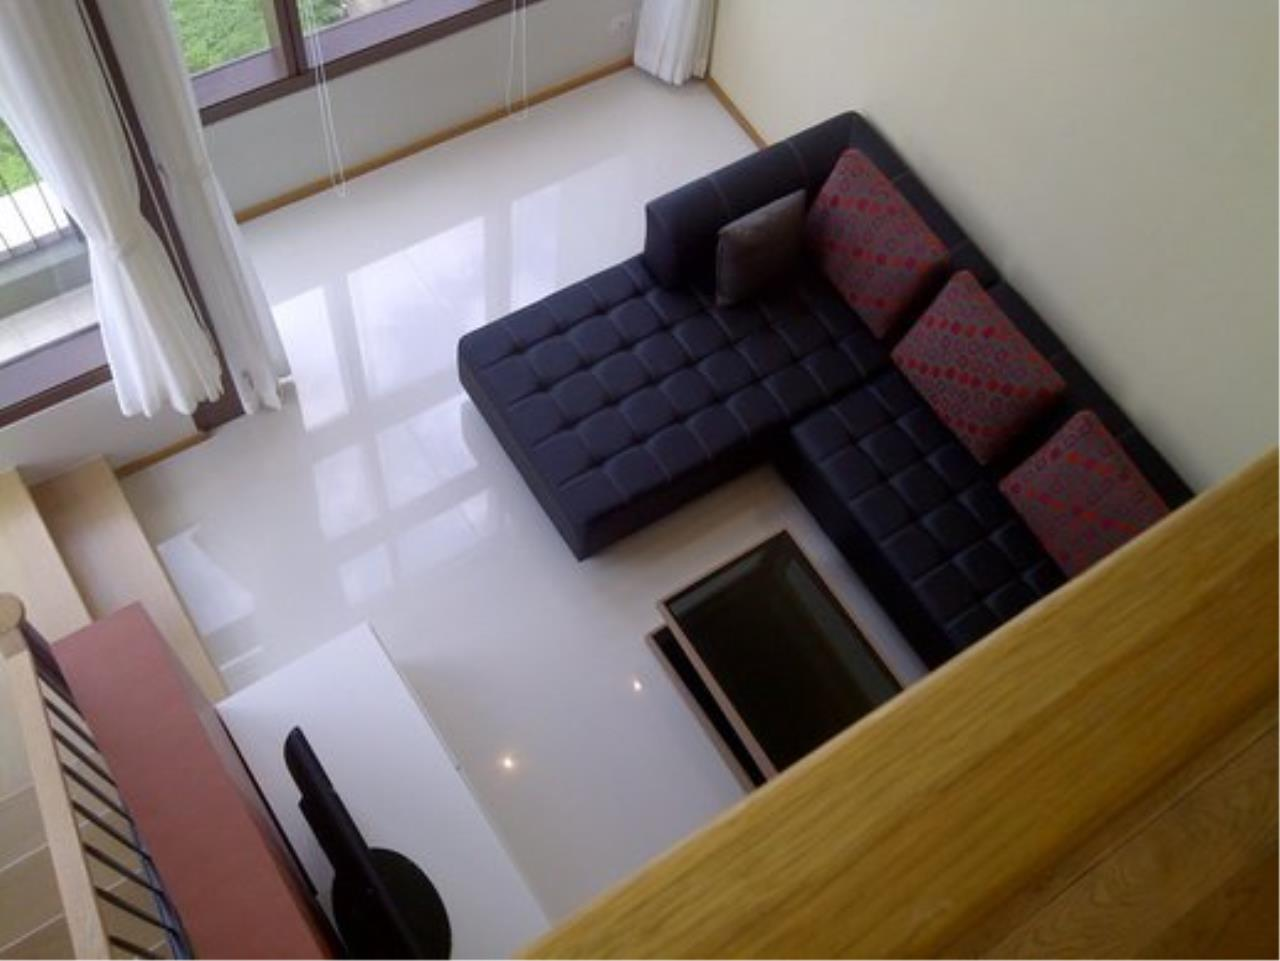 Piri Property Agency's Duplex 1 Bedroom Condo in the Emporio Place building for rent on high floor 8